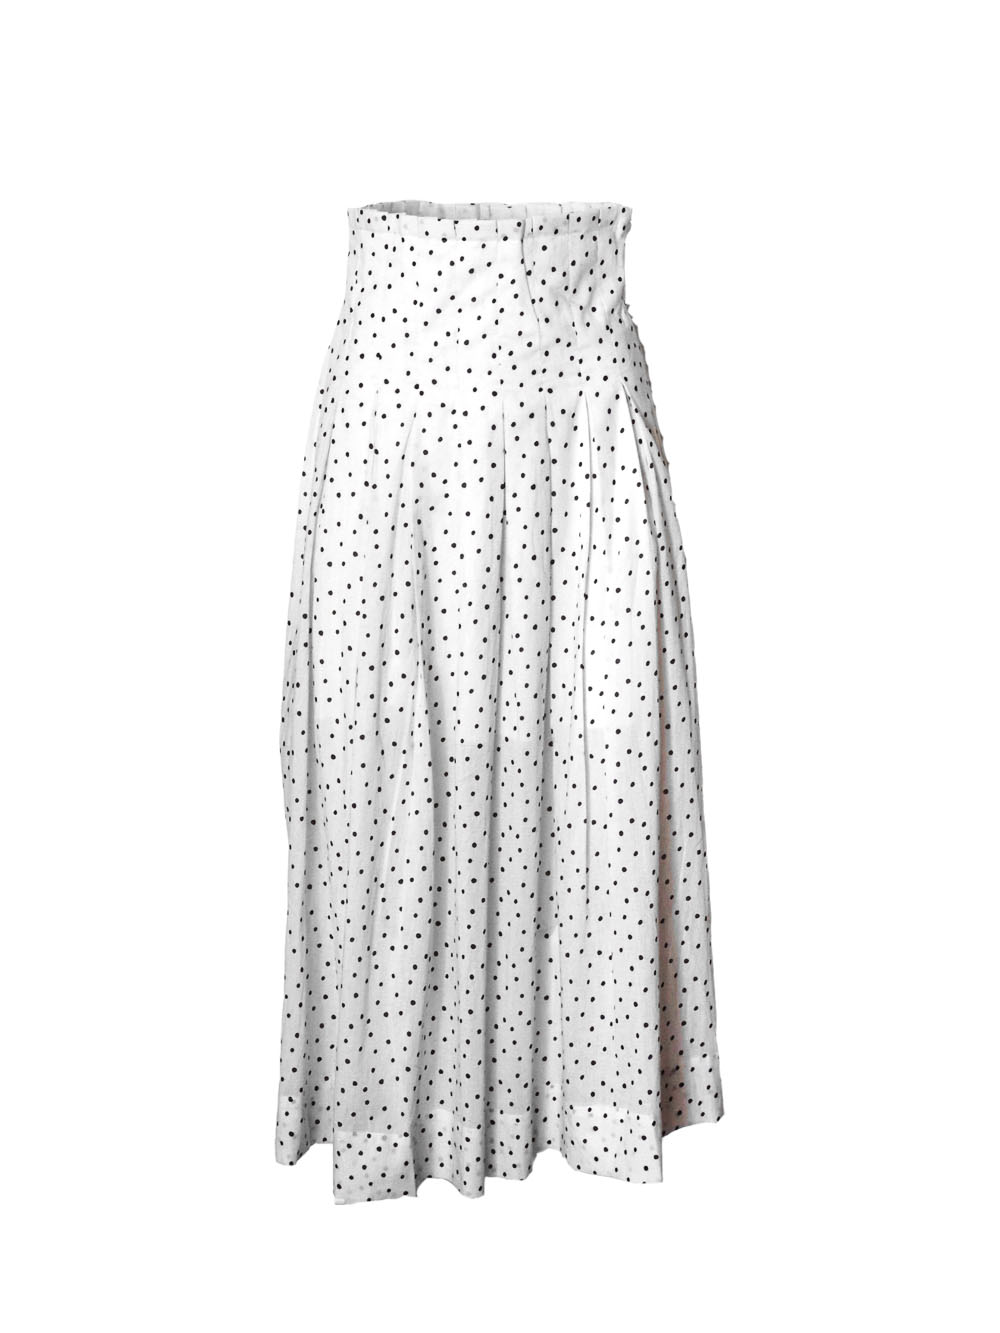 Ajaie Alaie Cookies & Cream Midi Skirt.jpg